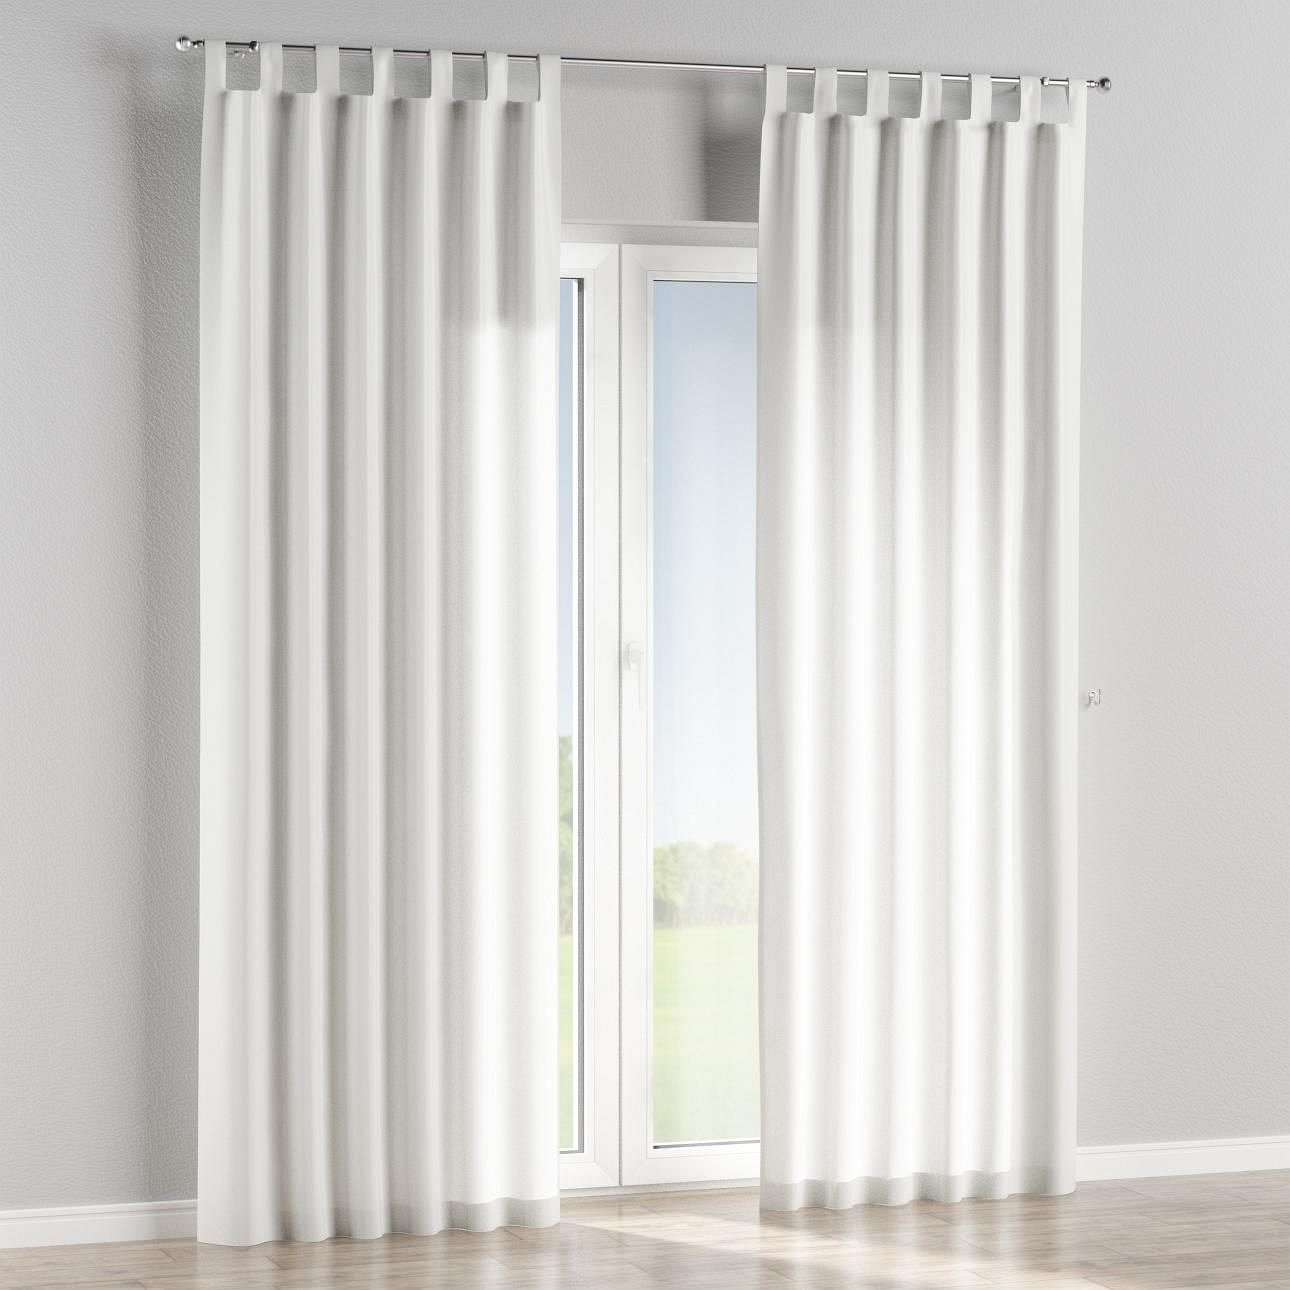 Tab top curtains in collection Bristol, fabric: 125-32